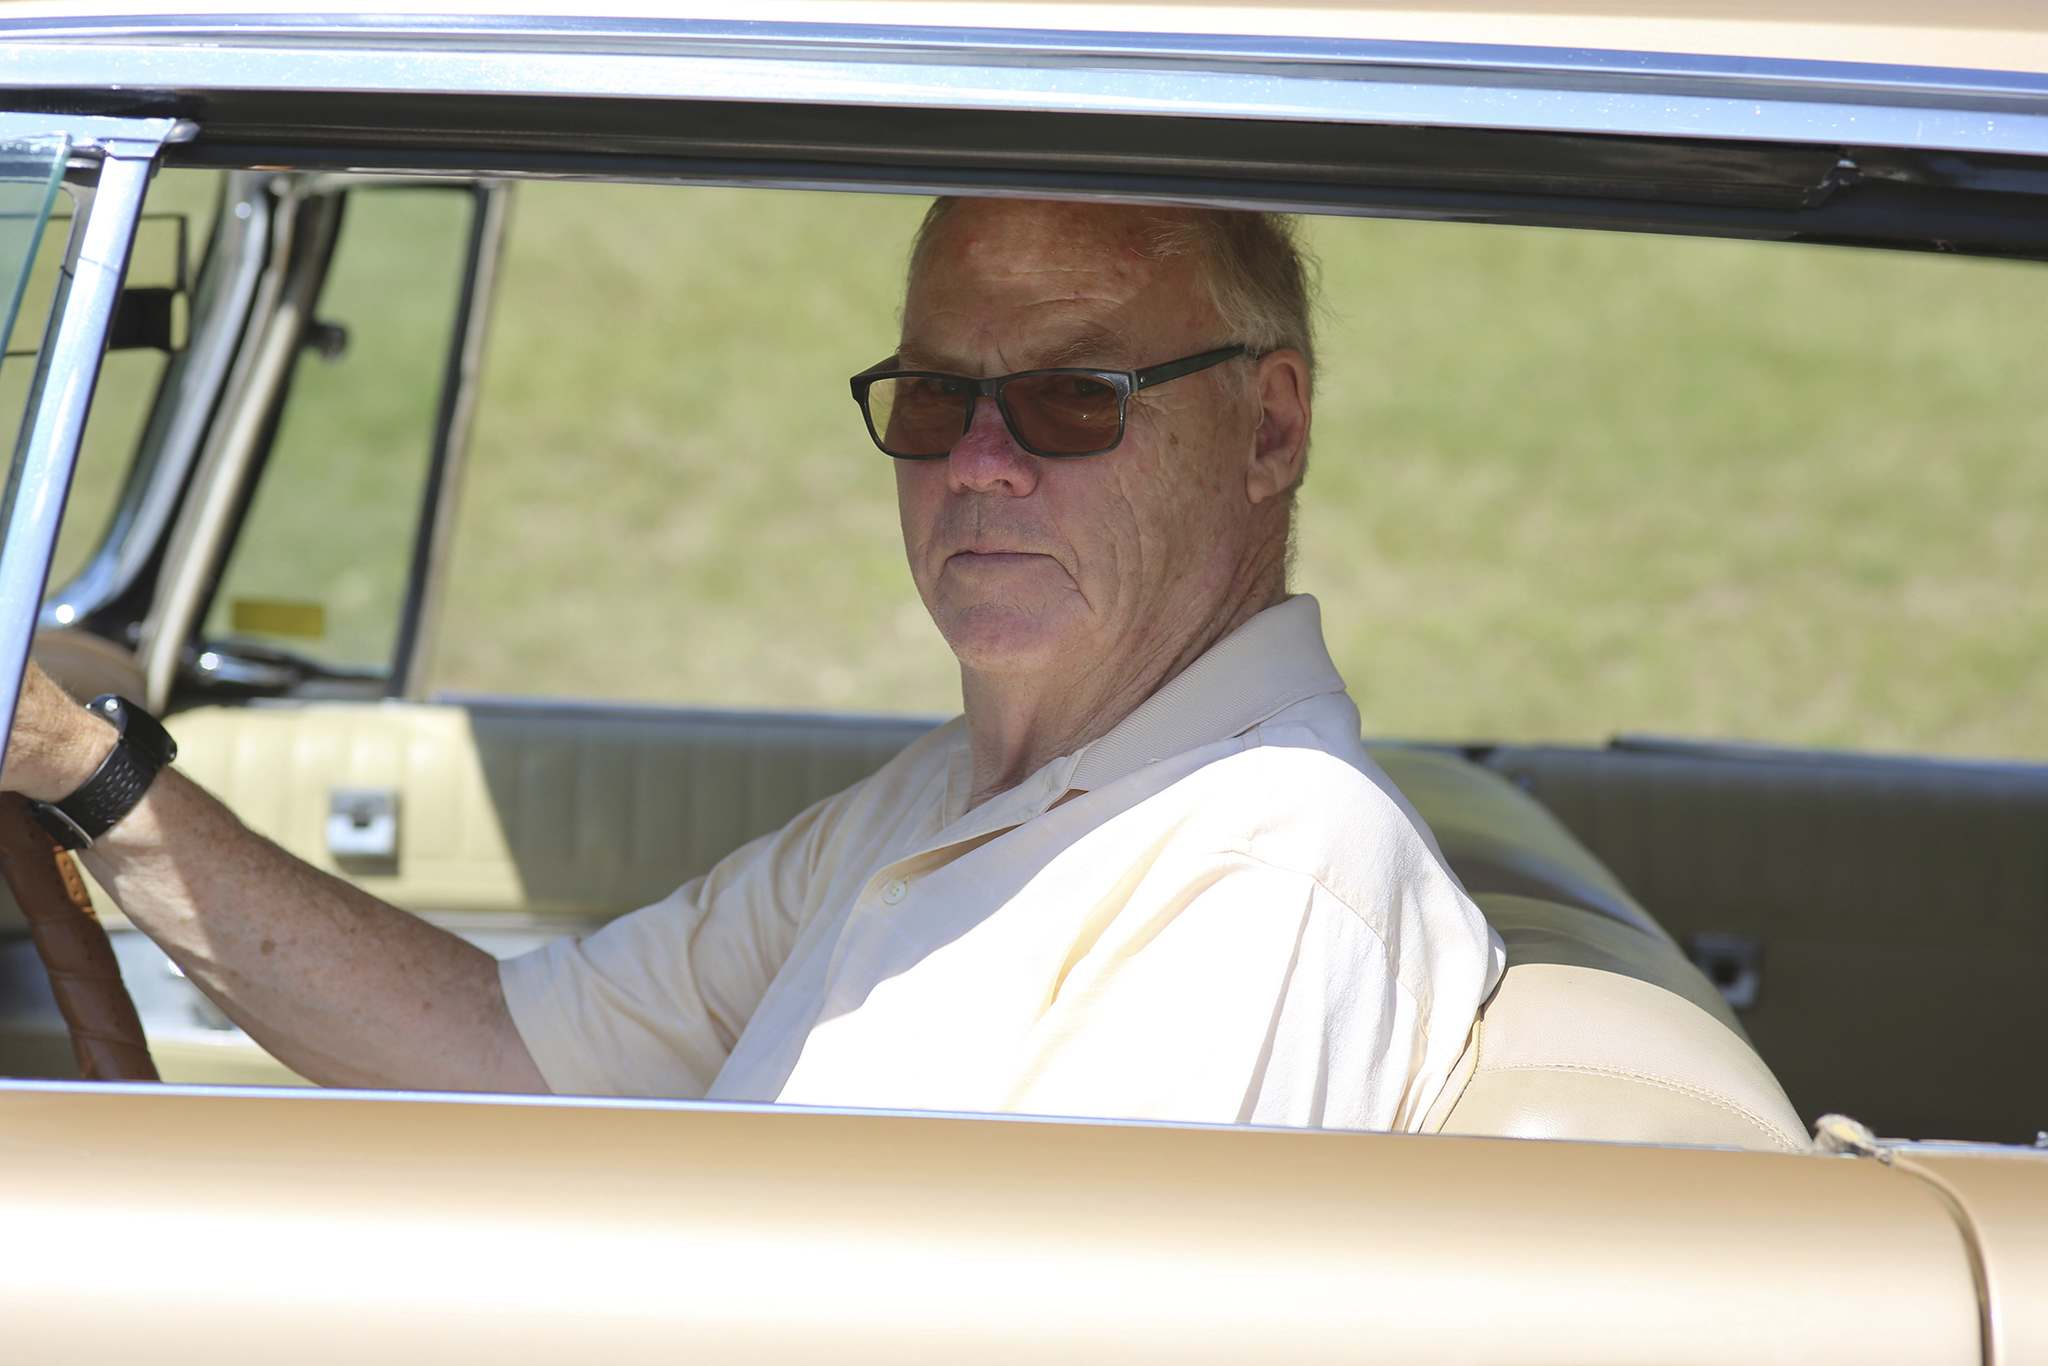 Atkinson gets behind the wheel of his 1963 Chrysler Imperial this past Monday in the RM of Cornwallis. The former Brandon mayor inherited this vehicle from his father in the mid-1990s. (Kyle Darbyson/The Brandon Sun)